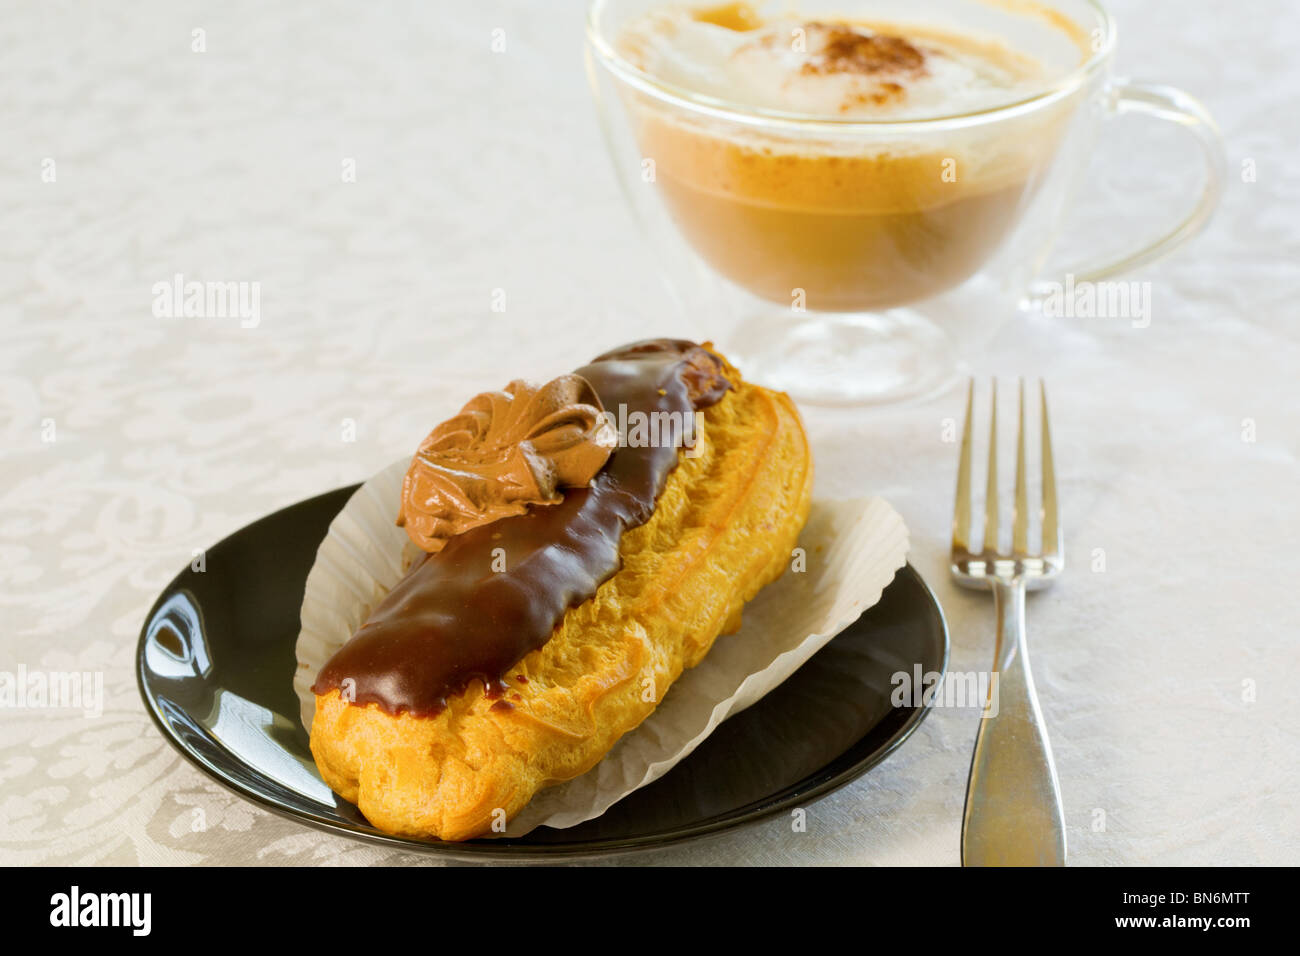 Eclair with a cup of cappuccino - Stock Image